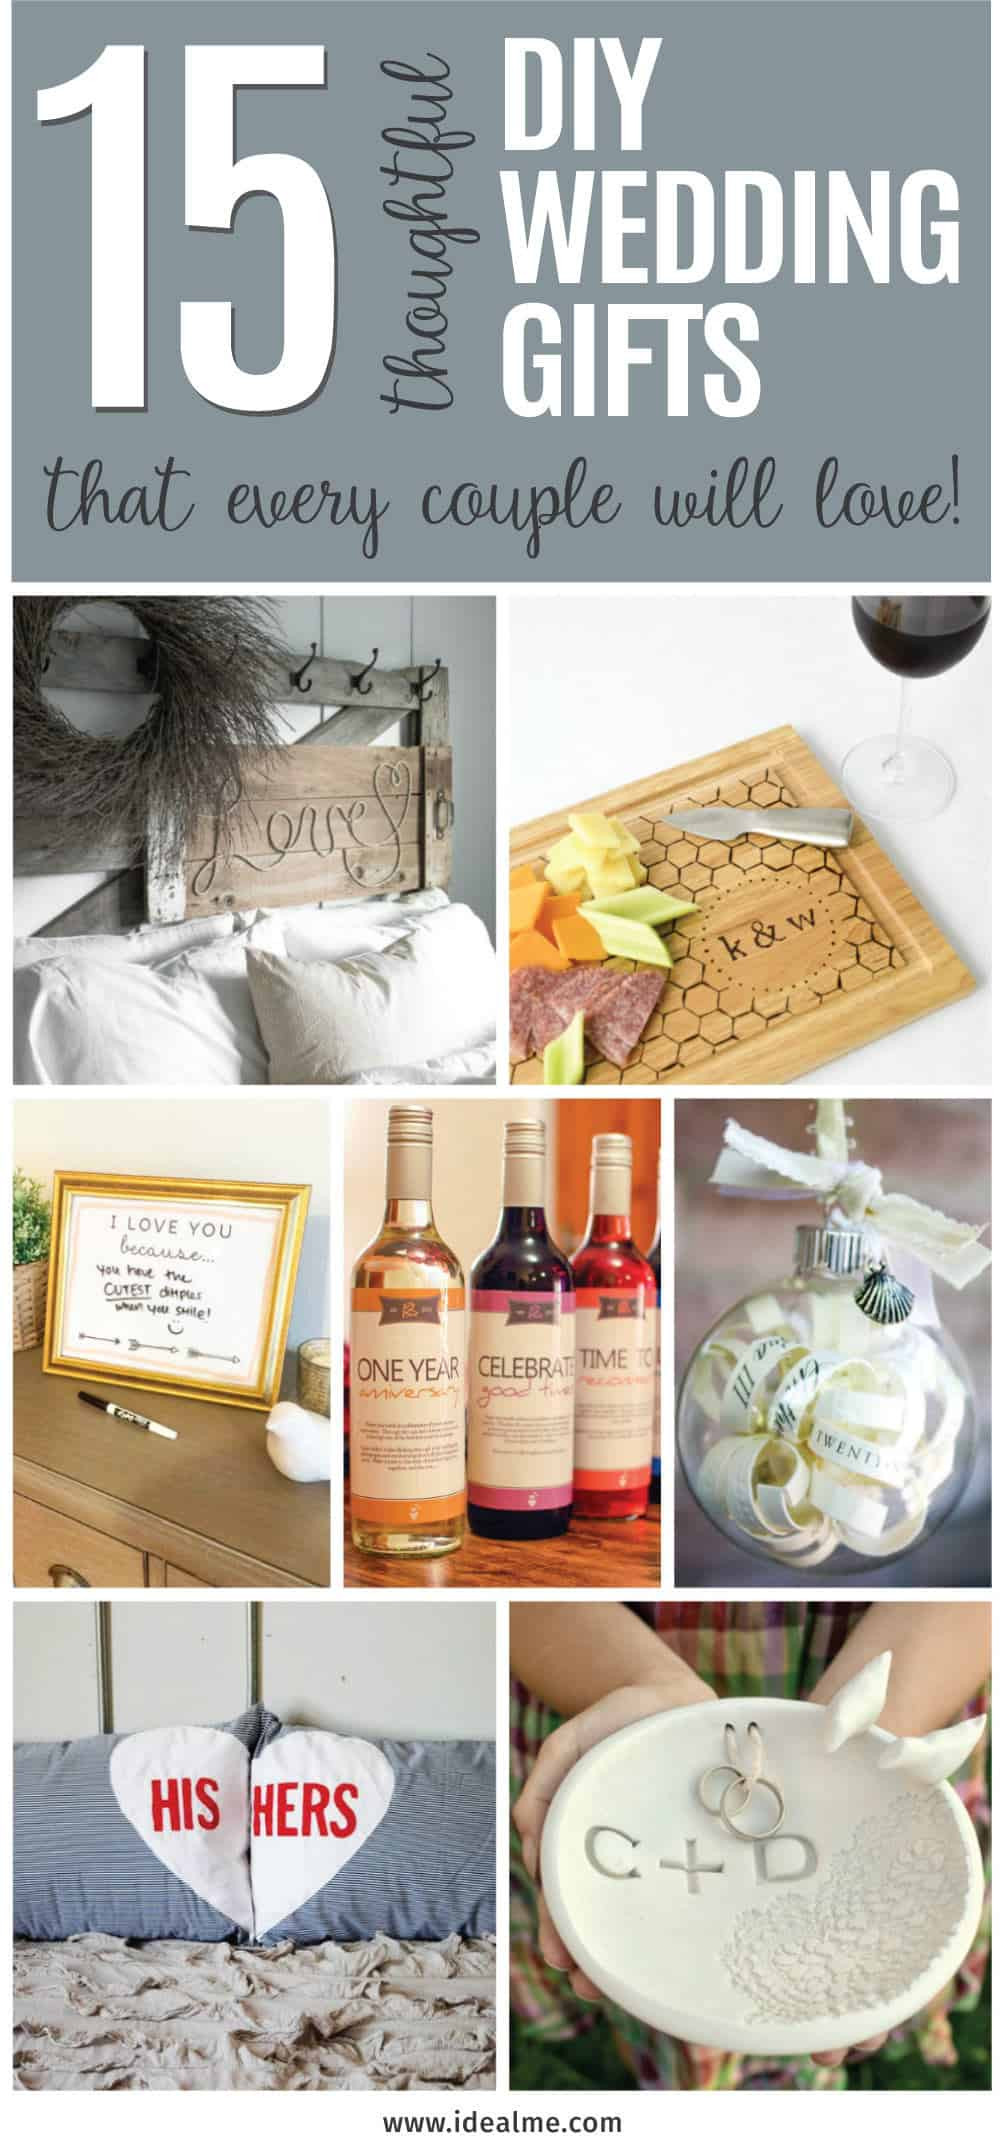 Best ideas about DIY Wedding Gift . Save or Pin 15 Thoughtful DIY Wedding Gifts that Every Couple Will Now.